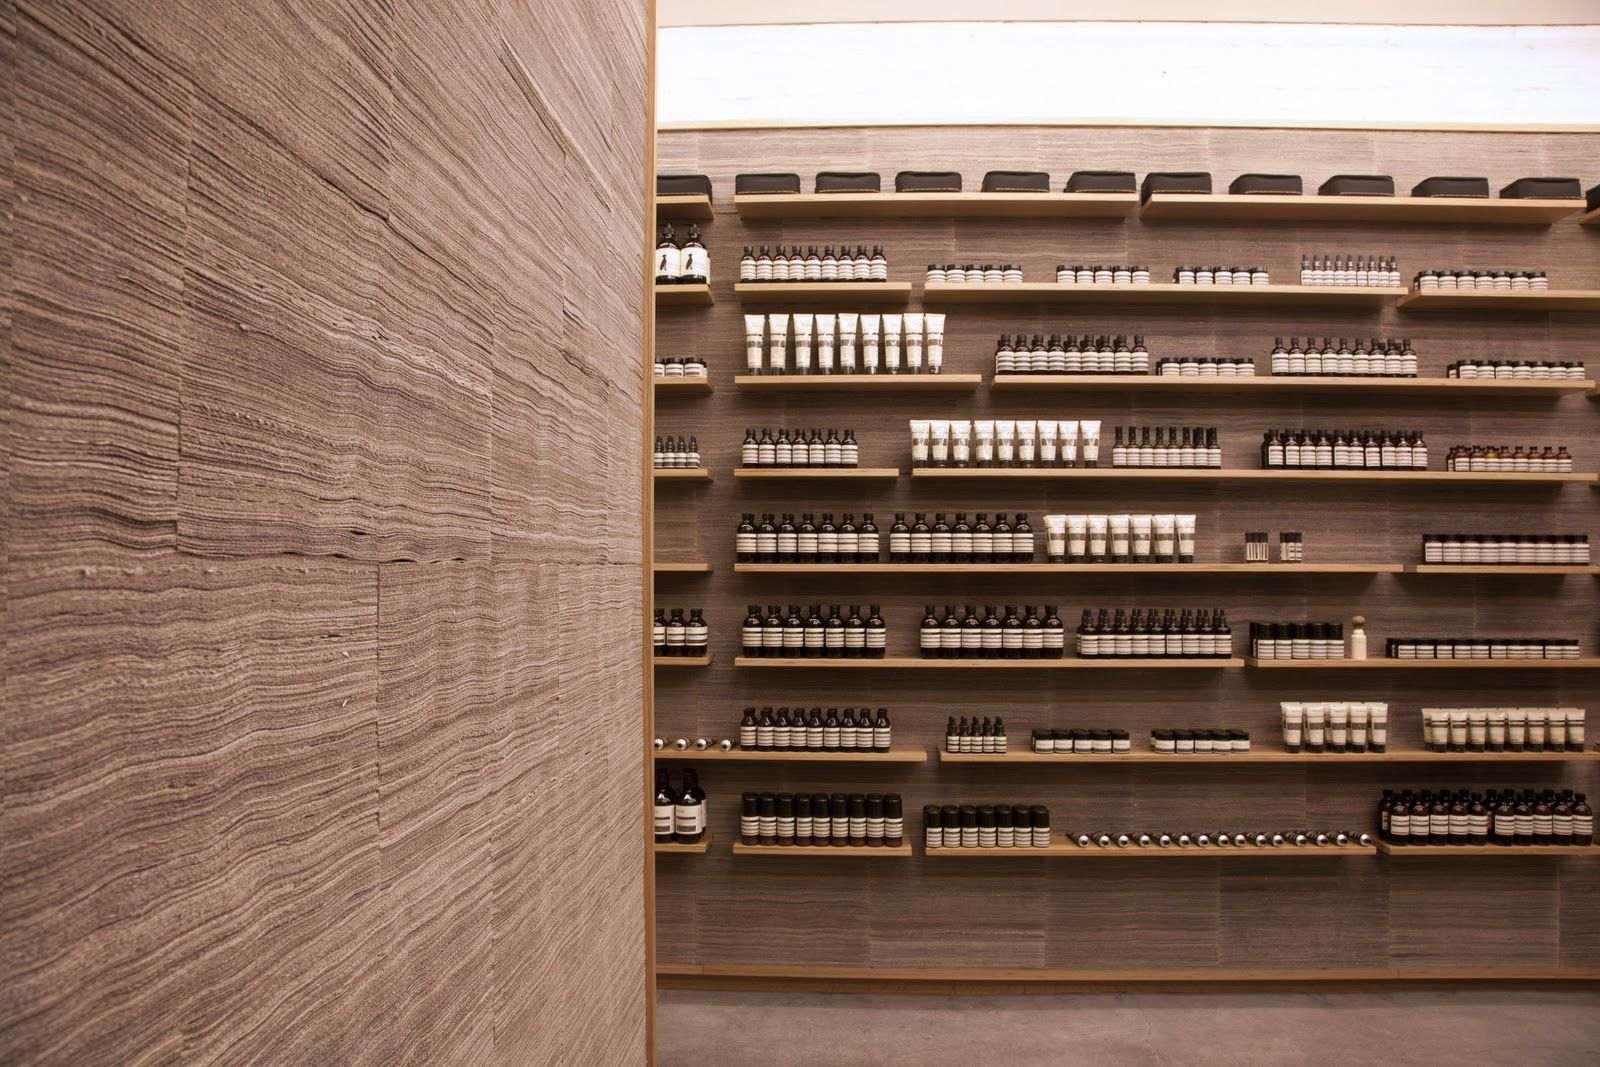 Aesop University Place Boutique NY. Designed by Jeremy Barbour of Tacklebox with direction from Aesop creative